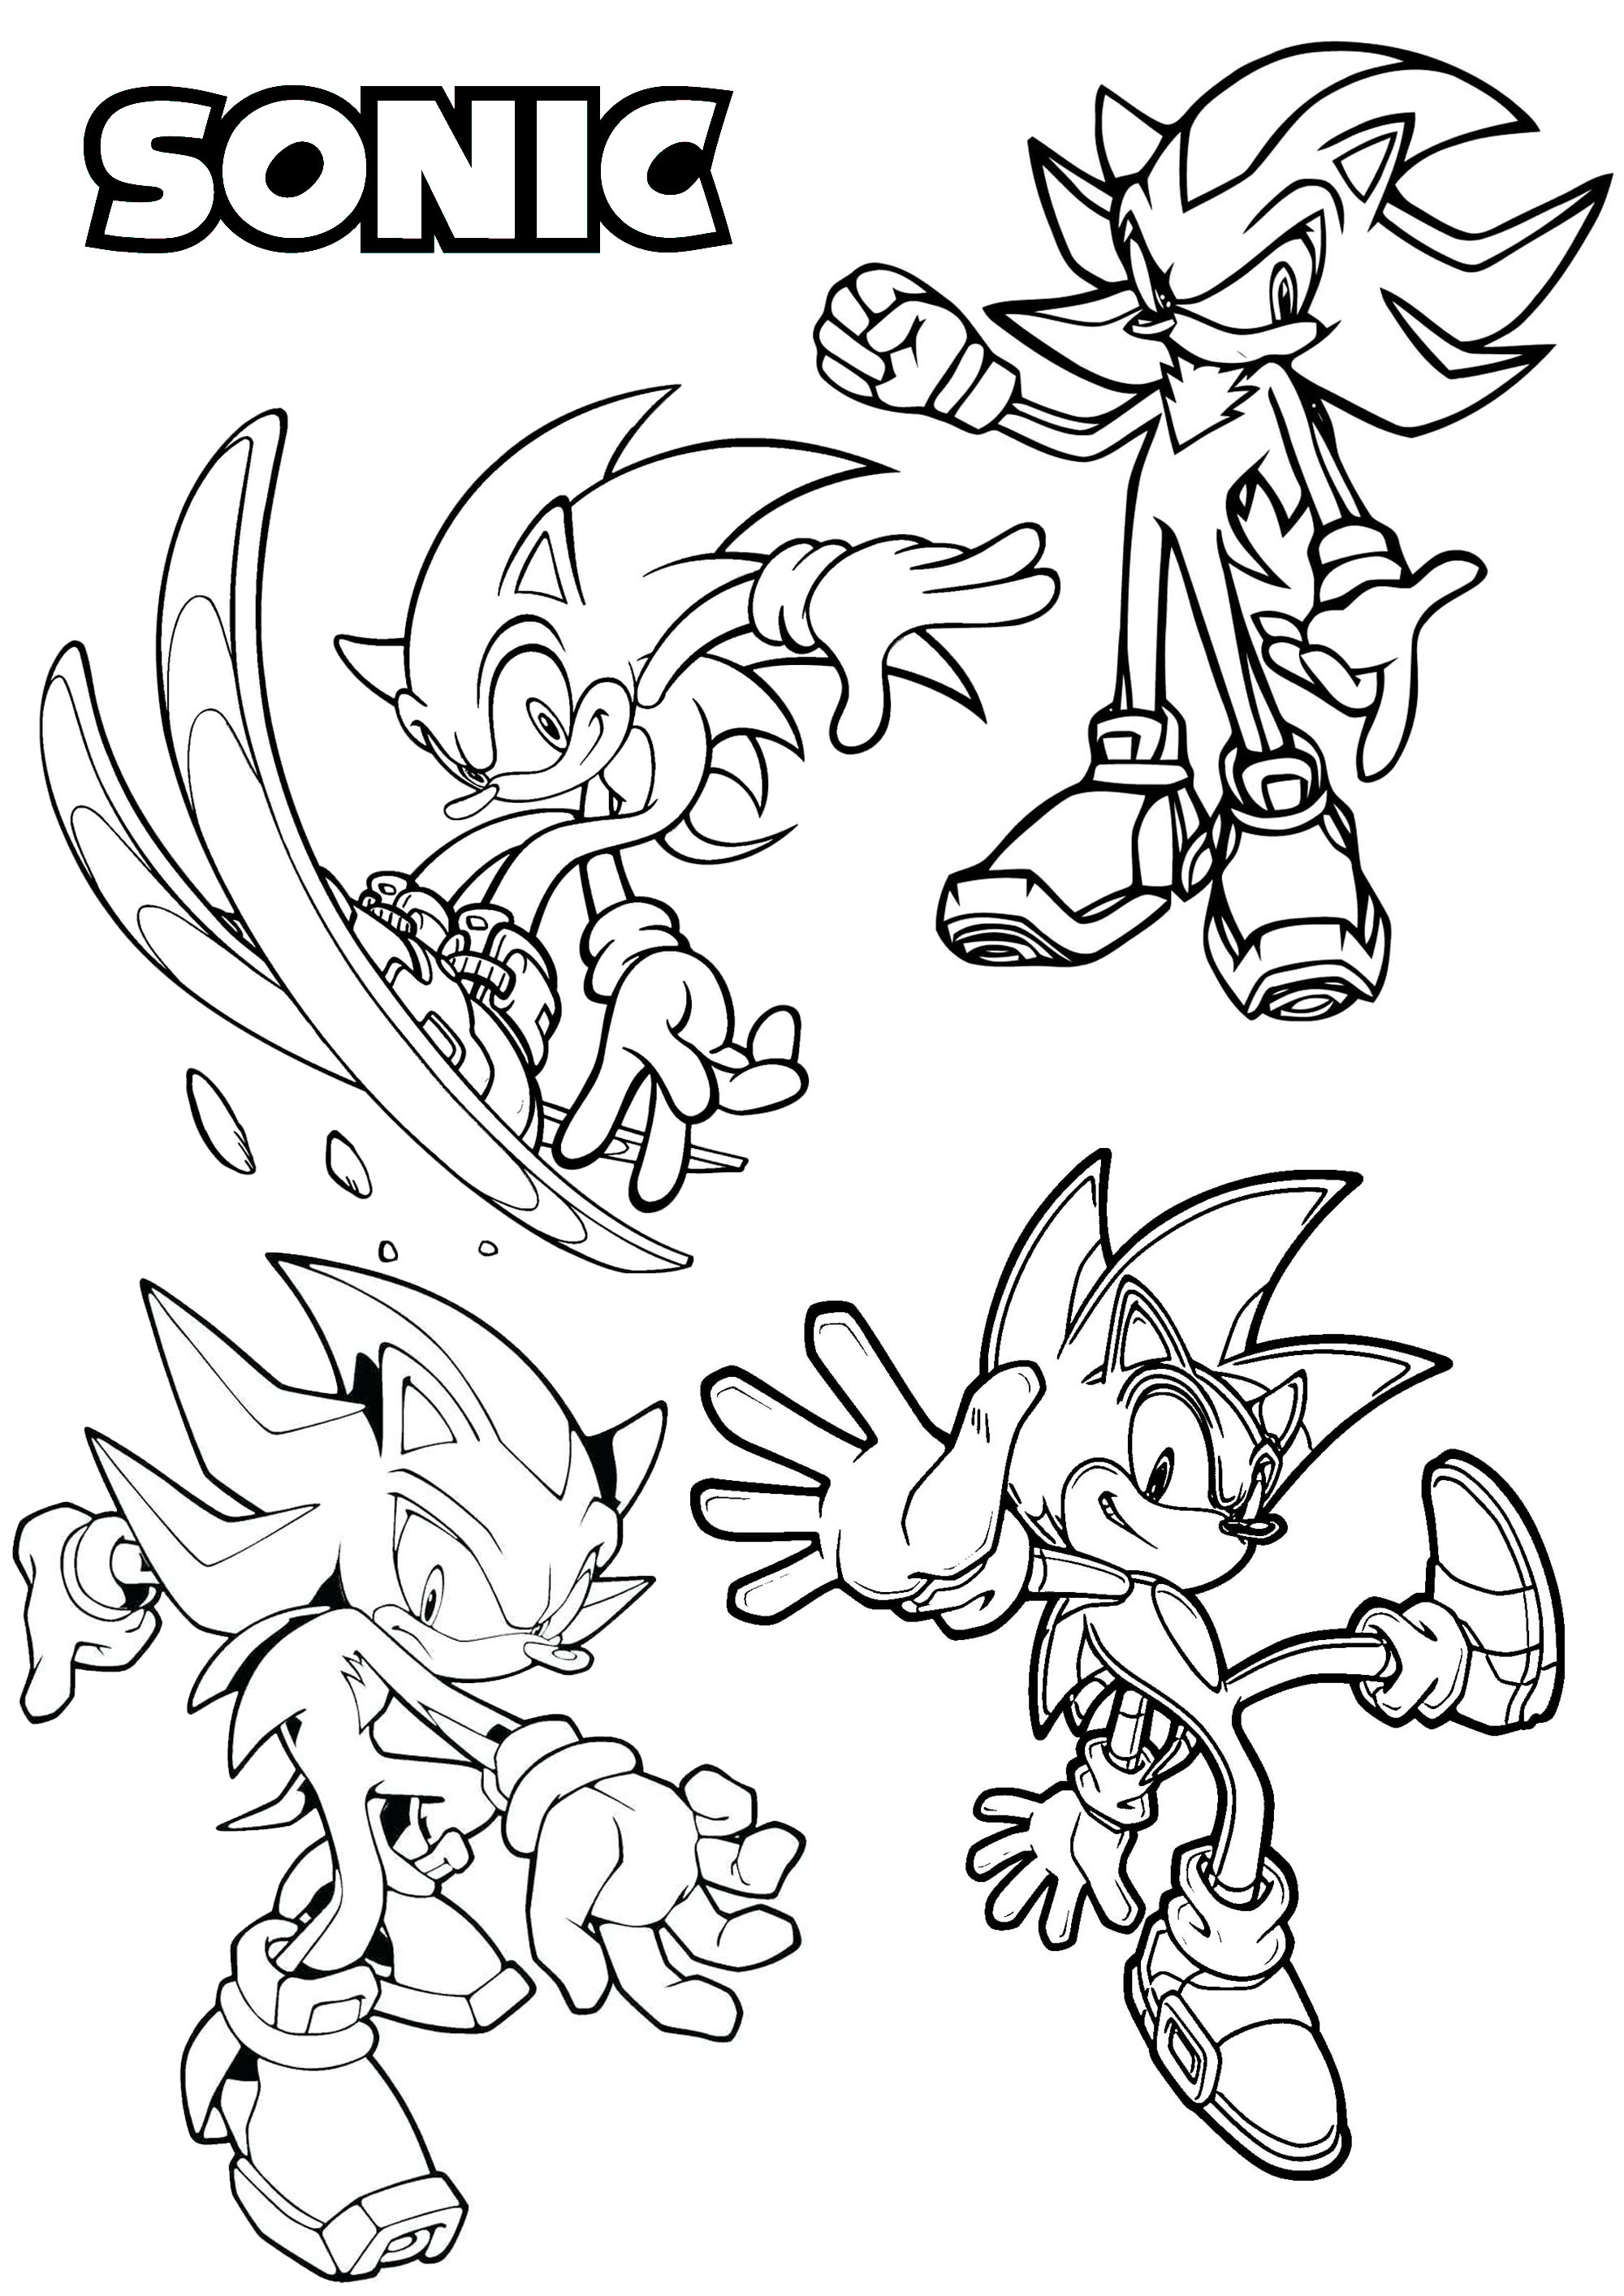 Four different versions of one of the most famous video games characters, created in the 90's : Sonic the Hedgehog